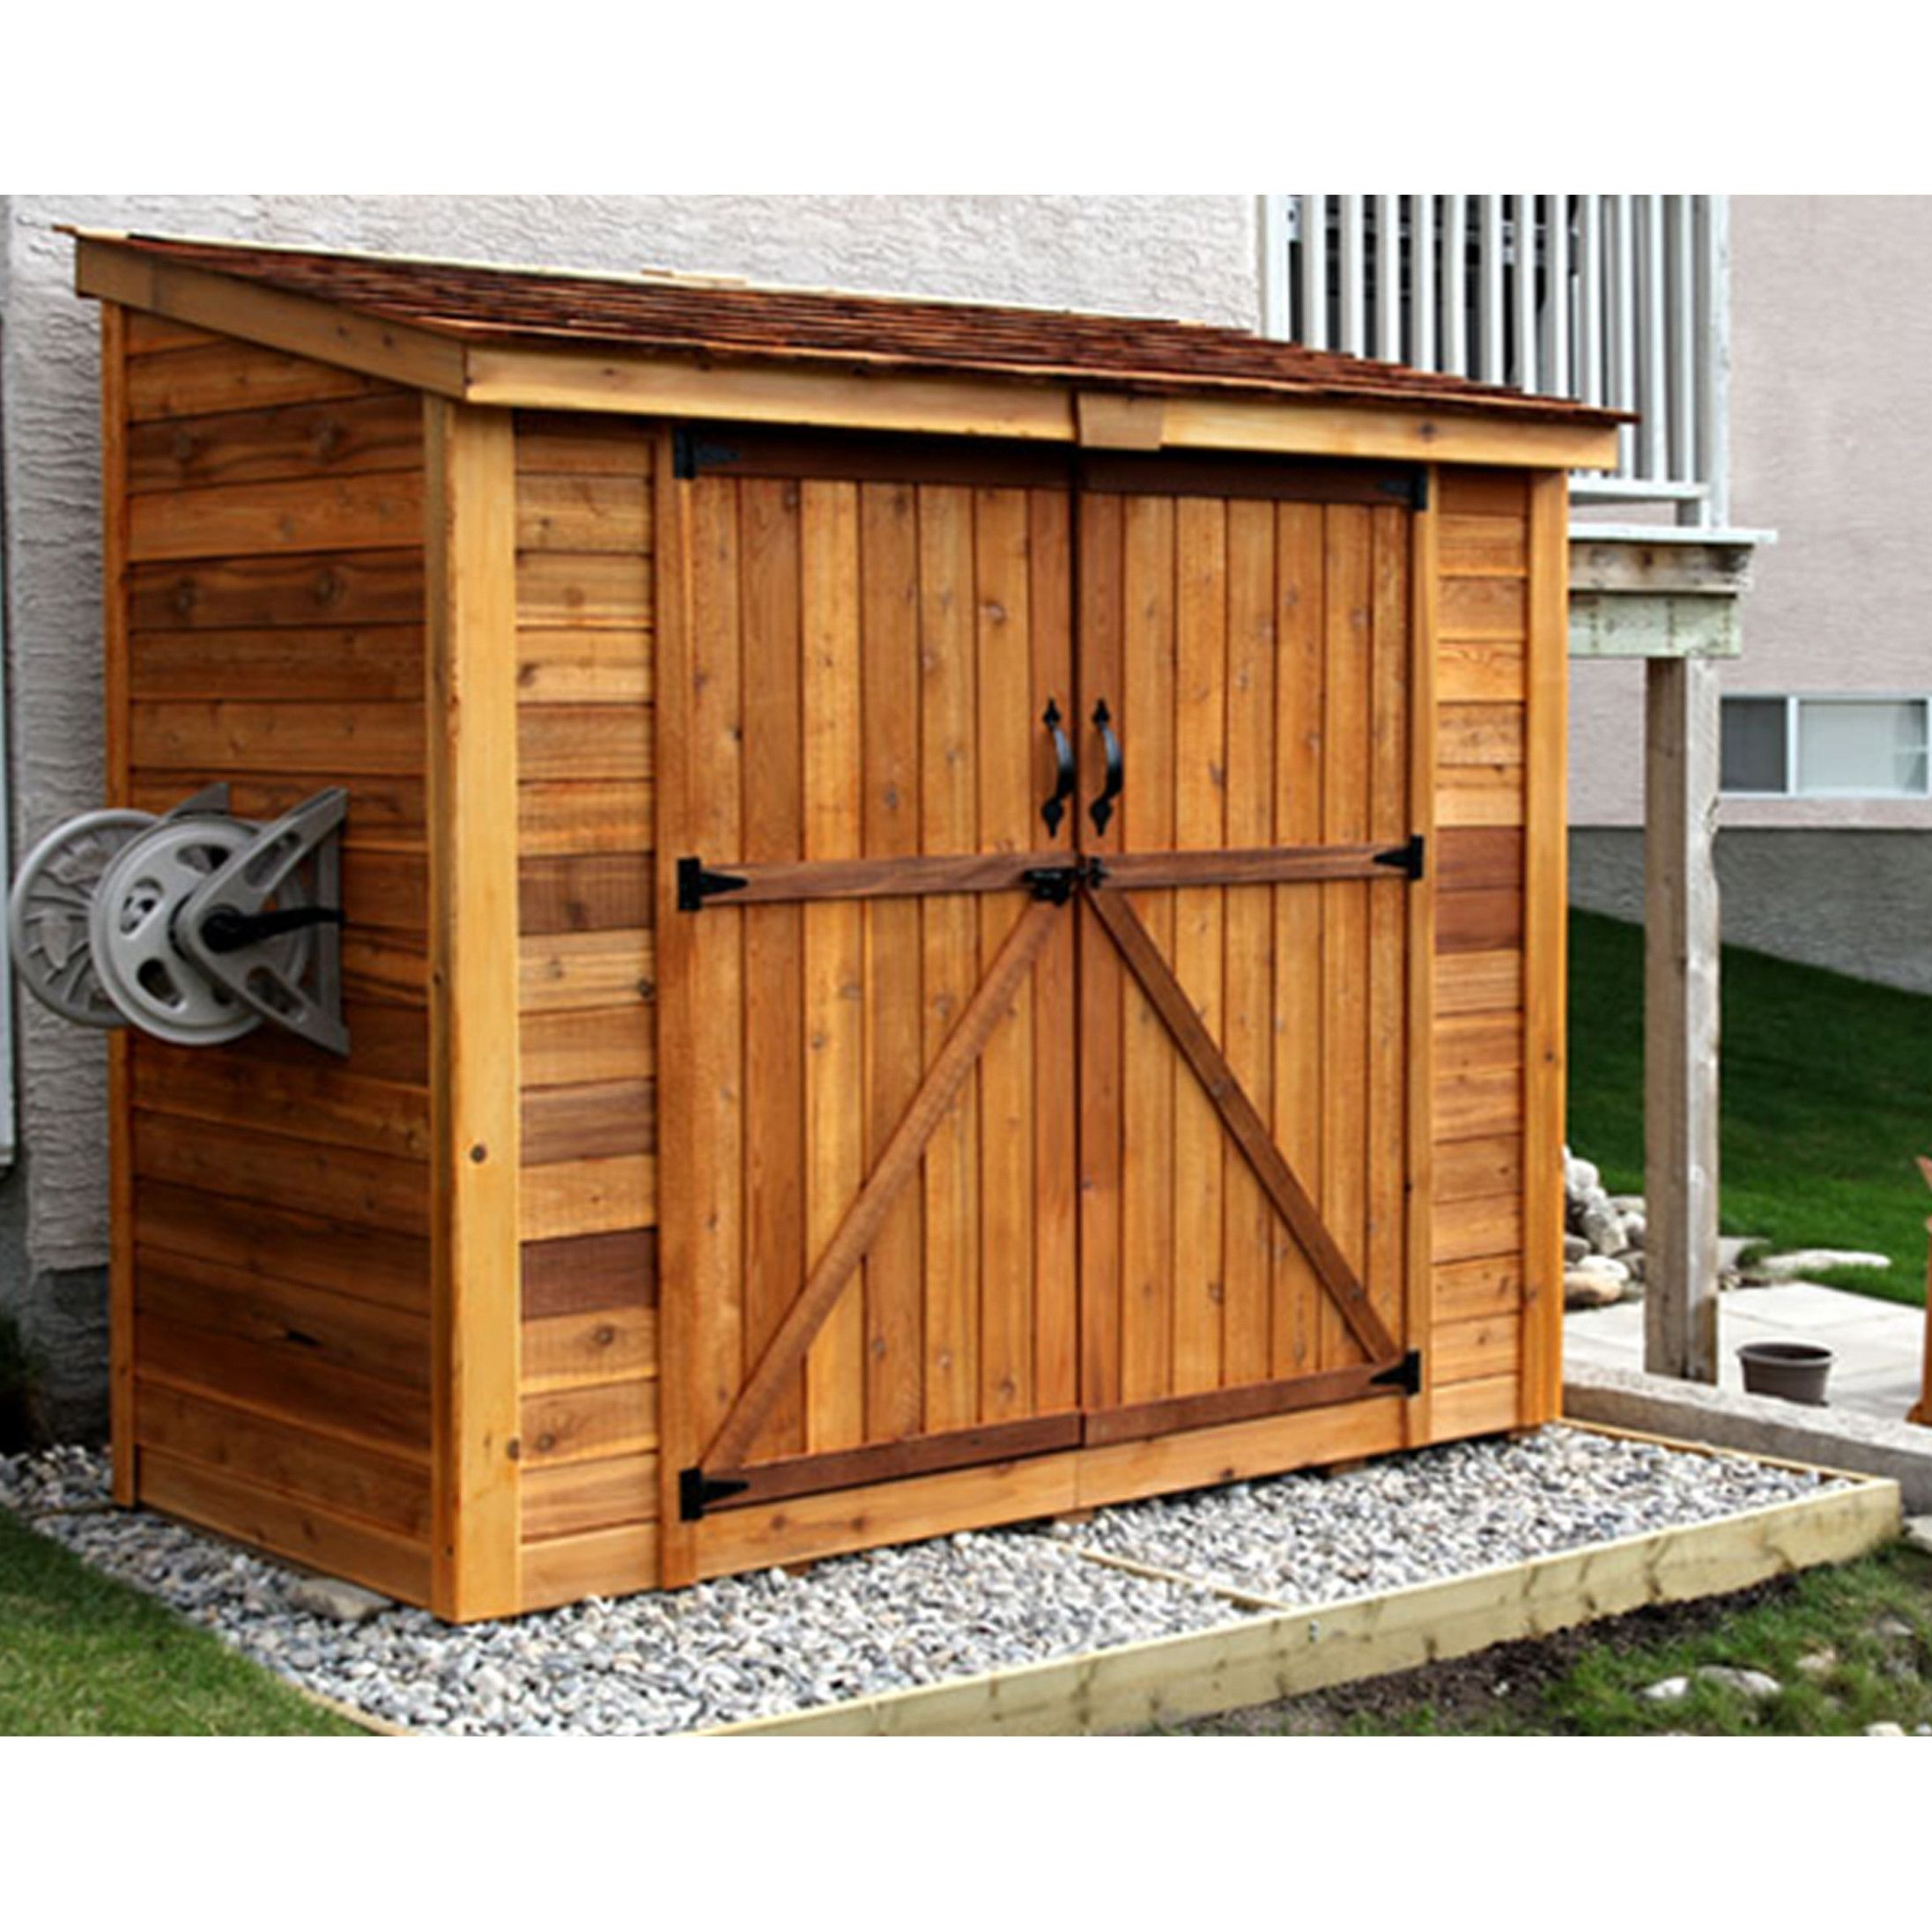 Outdoor living today spacesaver 8 ft w x 4 ft d garden for Exterior shed doors design